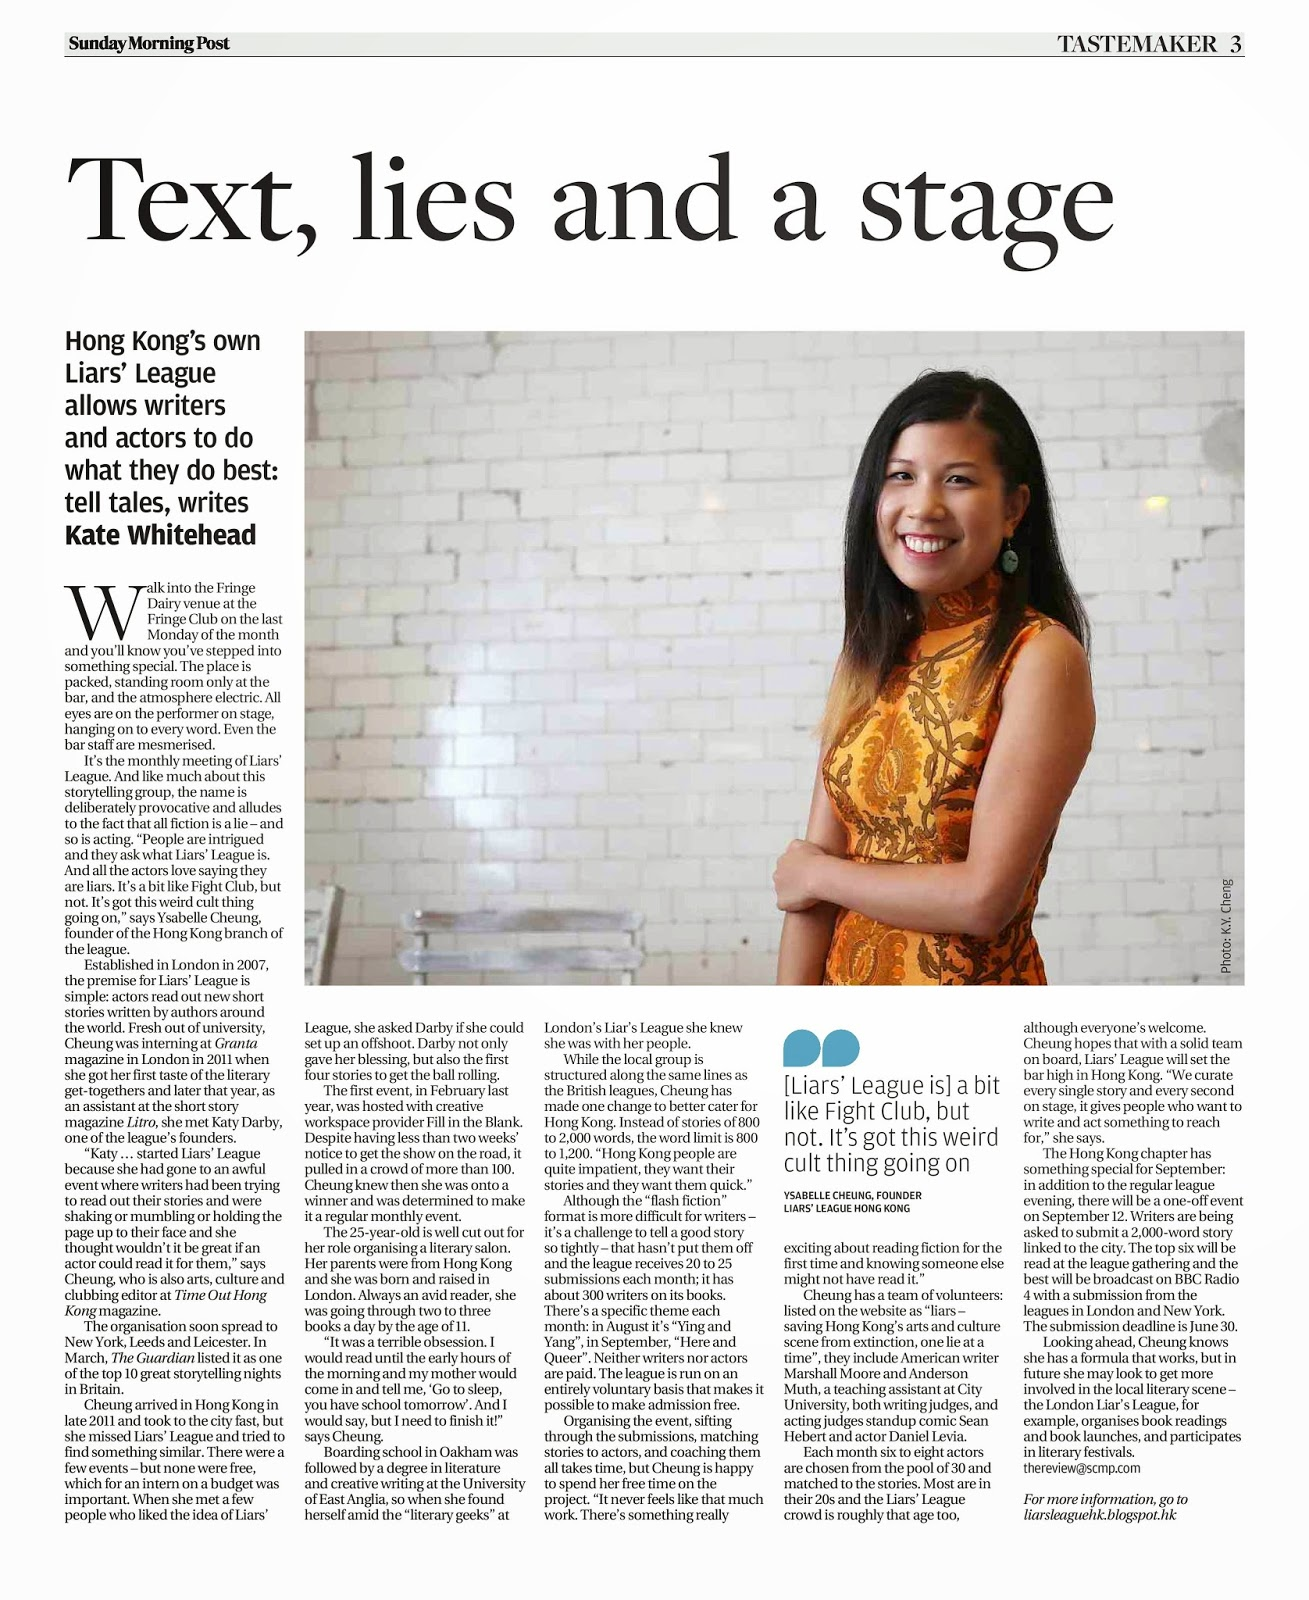 http://www.scmp.com/lifestyle/arts-culture/article/1531625/liars-league-brings-together-actors-and-writers-tell-fiction